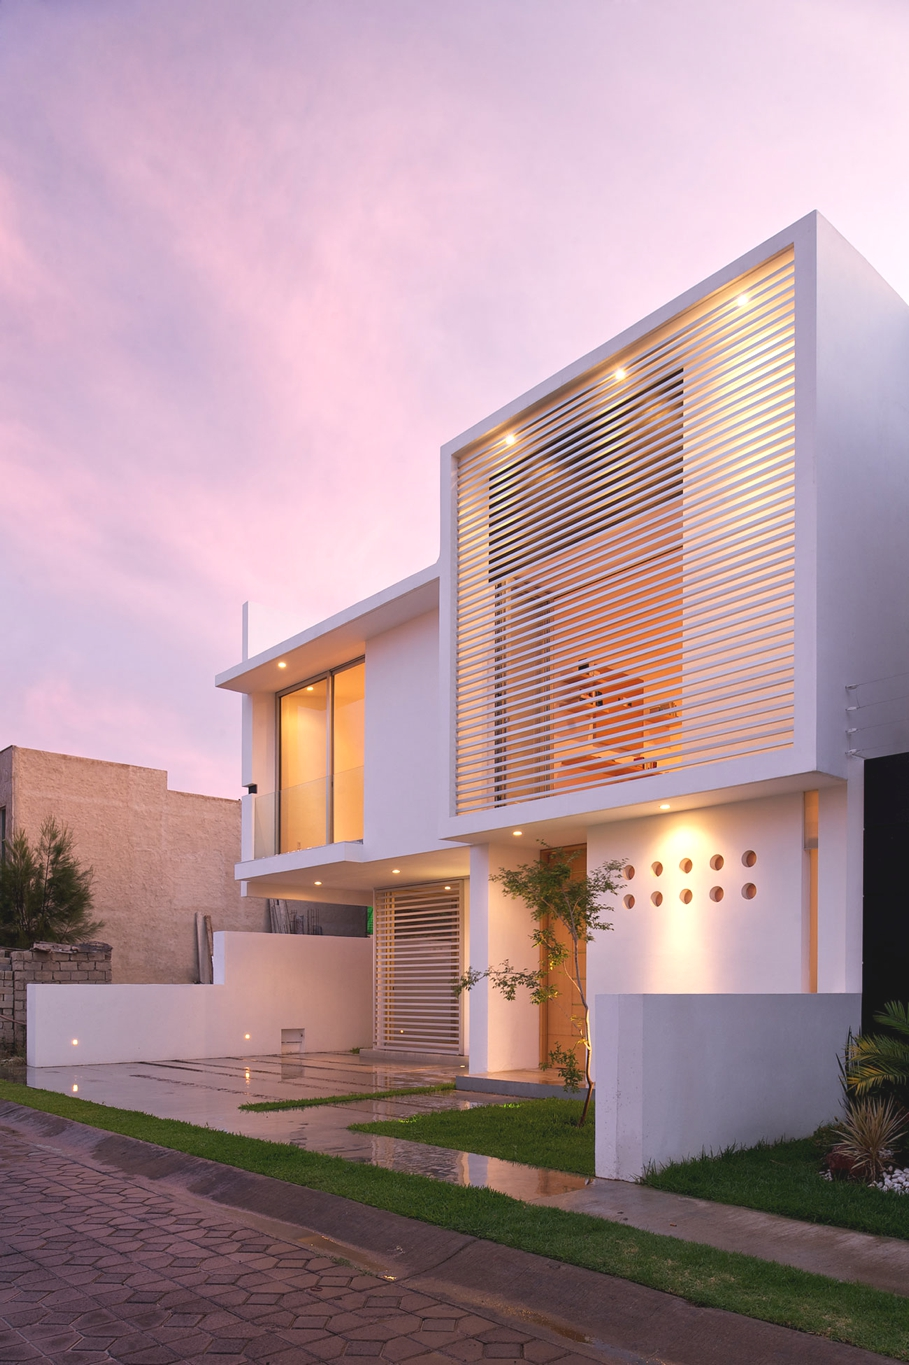 Contemporary architectural design at seth navarrette house mexico adelto adelto Home architecture in mexico